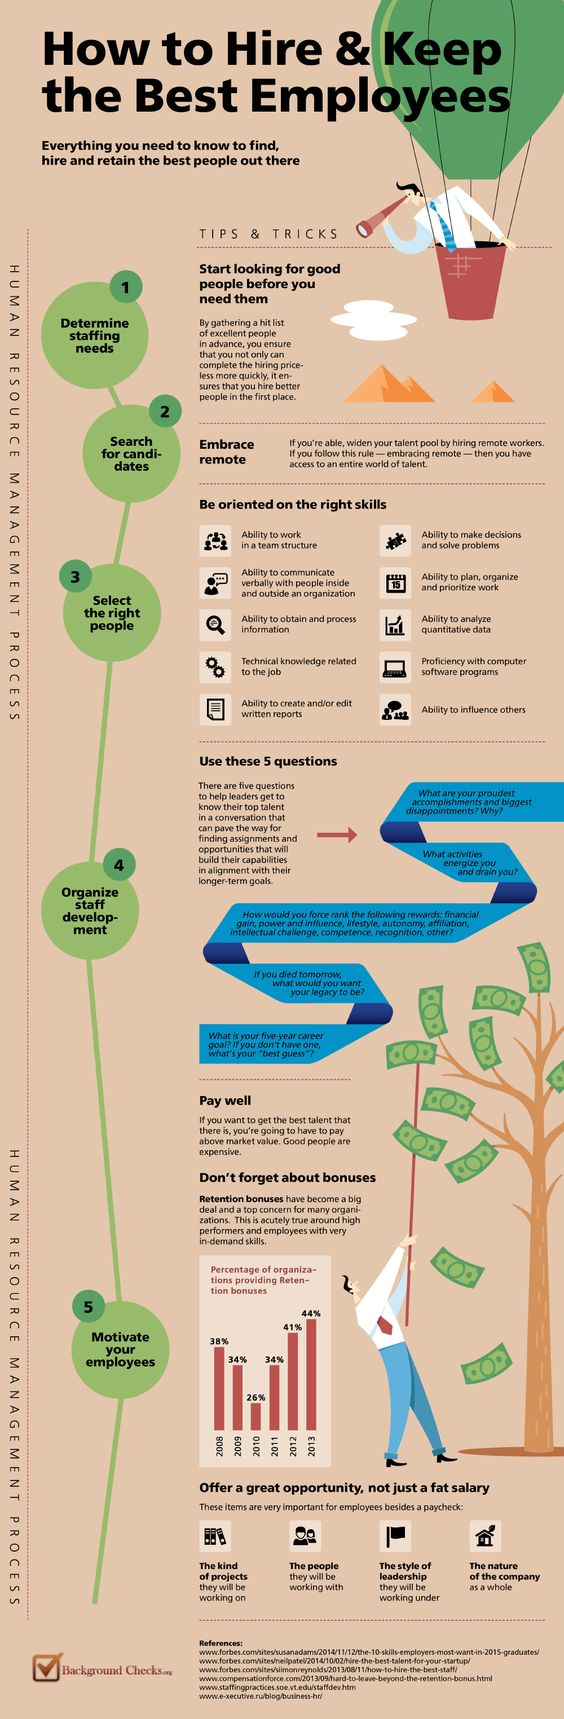 INFOGRAPHIC: How to Find, Recruit, Hire and Keep the Best Employees | Background Checks.org